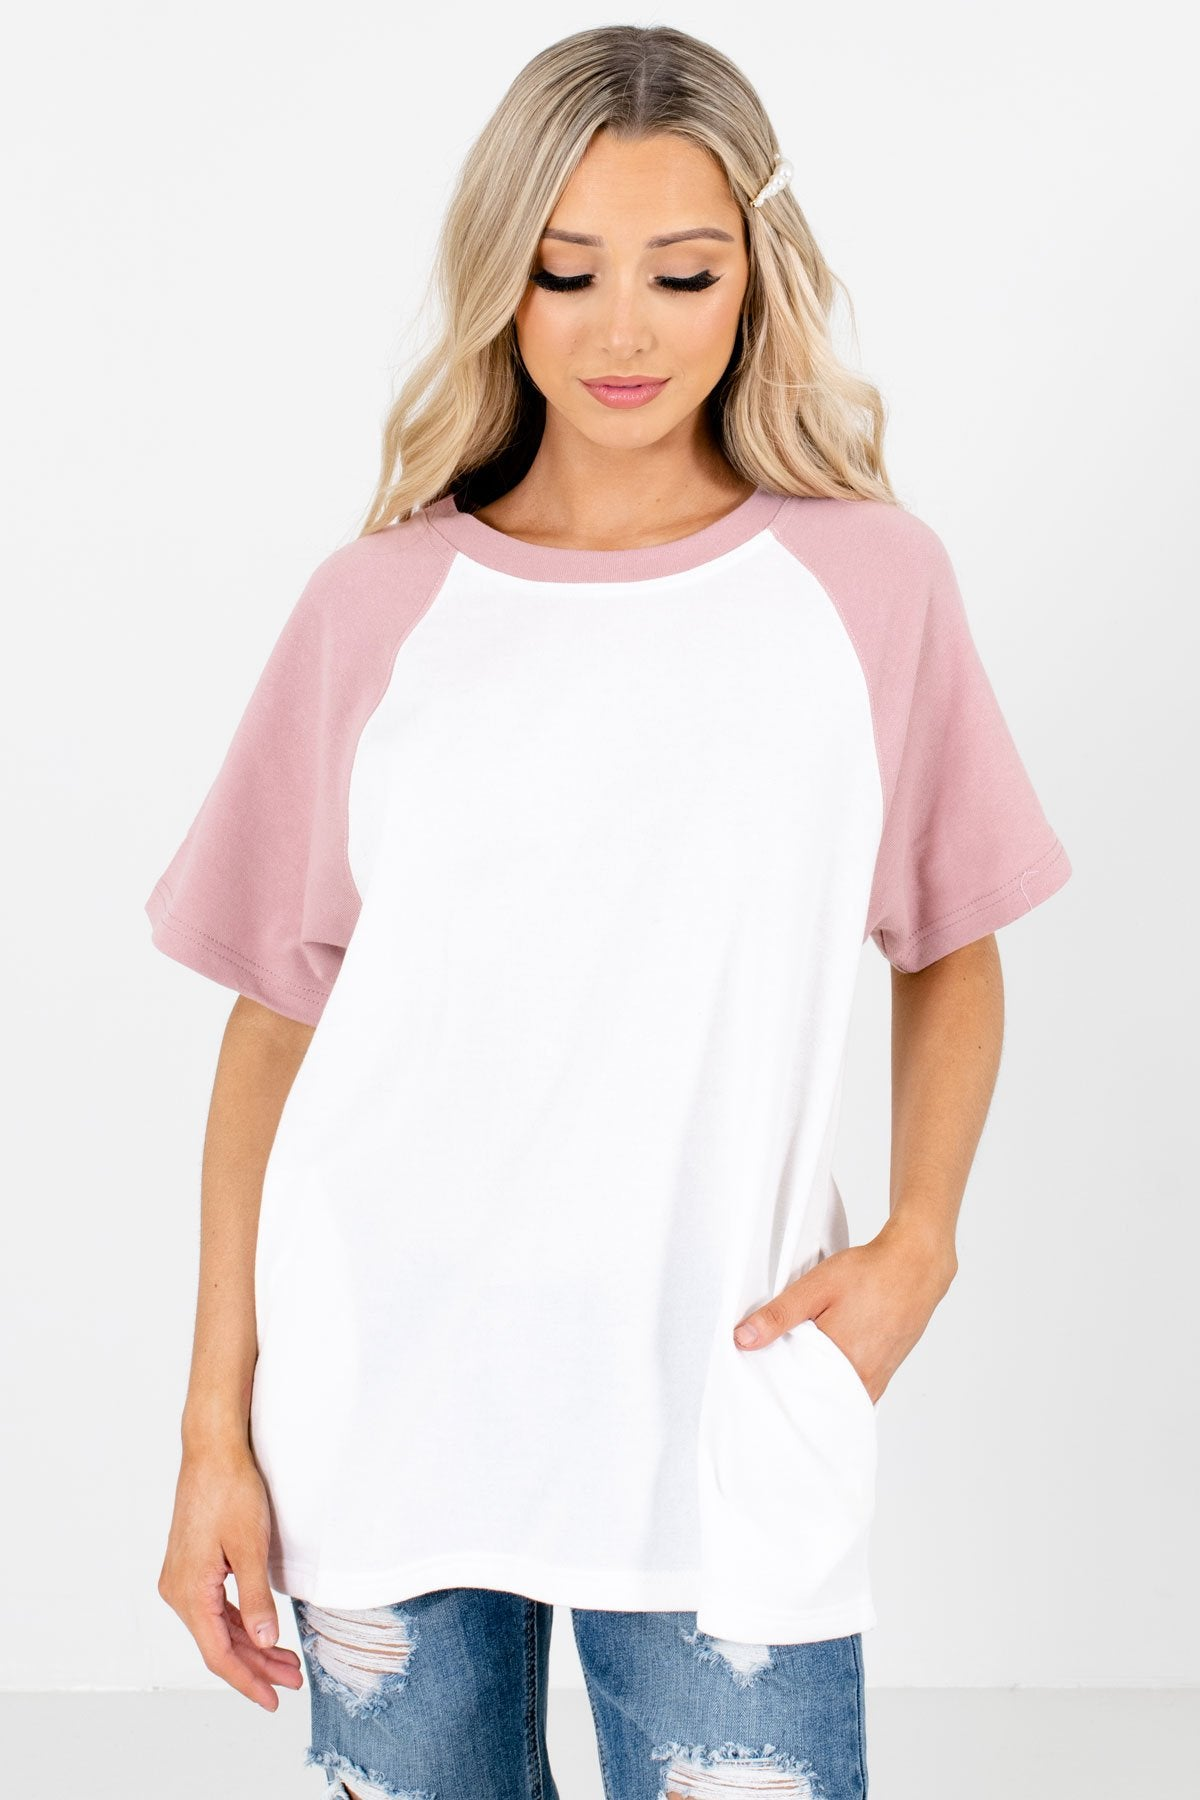 White and Pink Raglan Style Boutique T-Shirts for Women